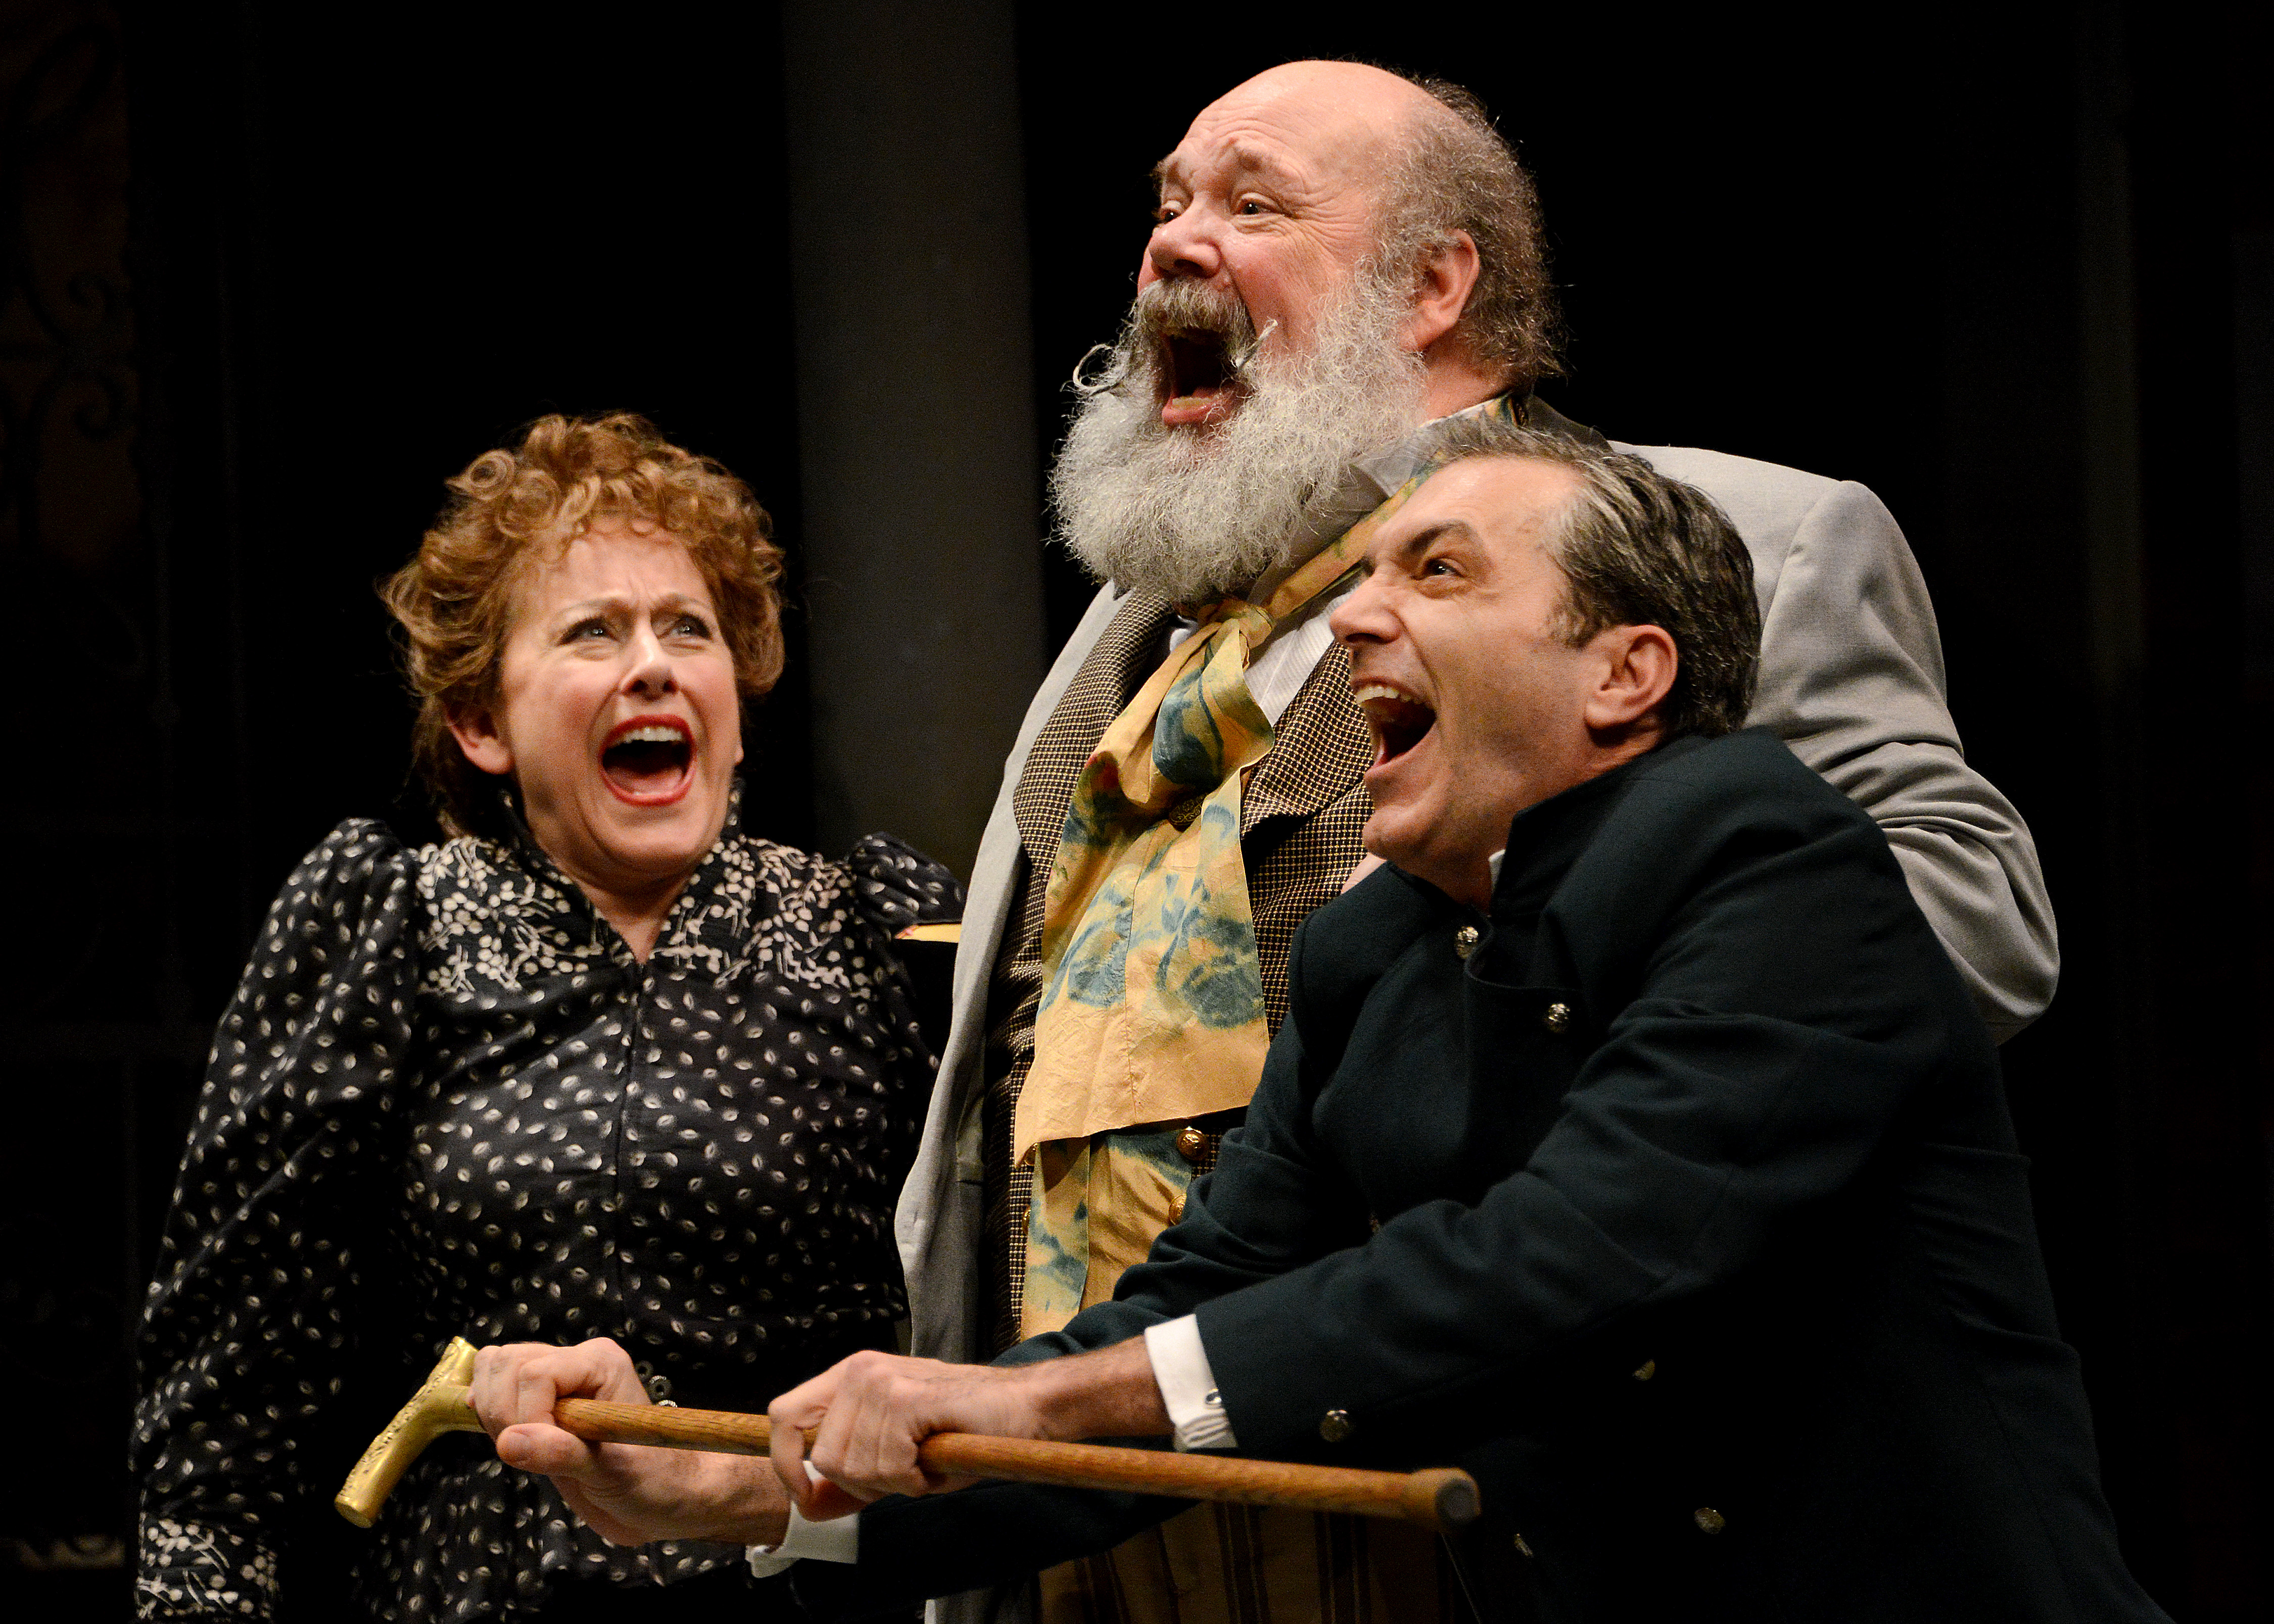 Maria, Sir Toby, and Fabian (Helena Ruoti, John Ahlin, Tony Bingham) can't believe how silly things get, and they are expert practitioners themselves.